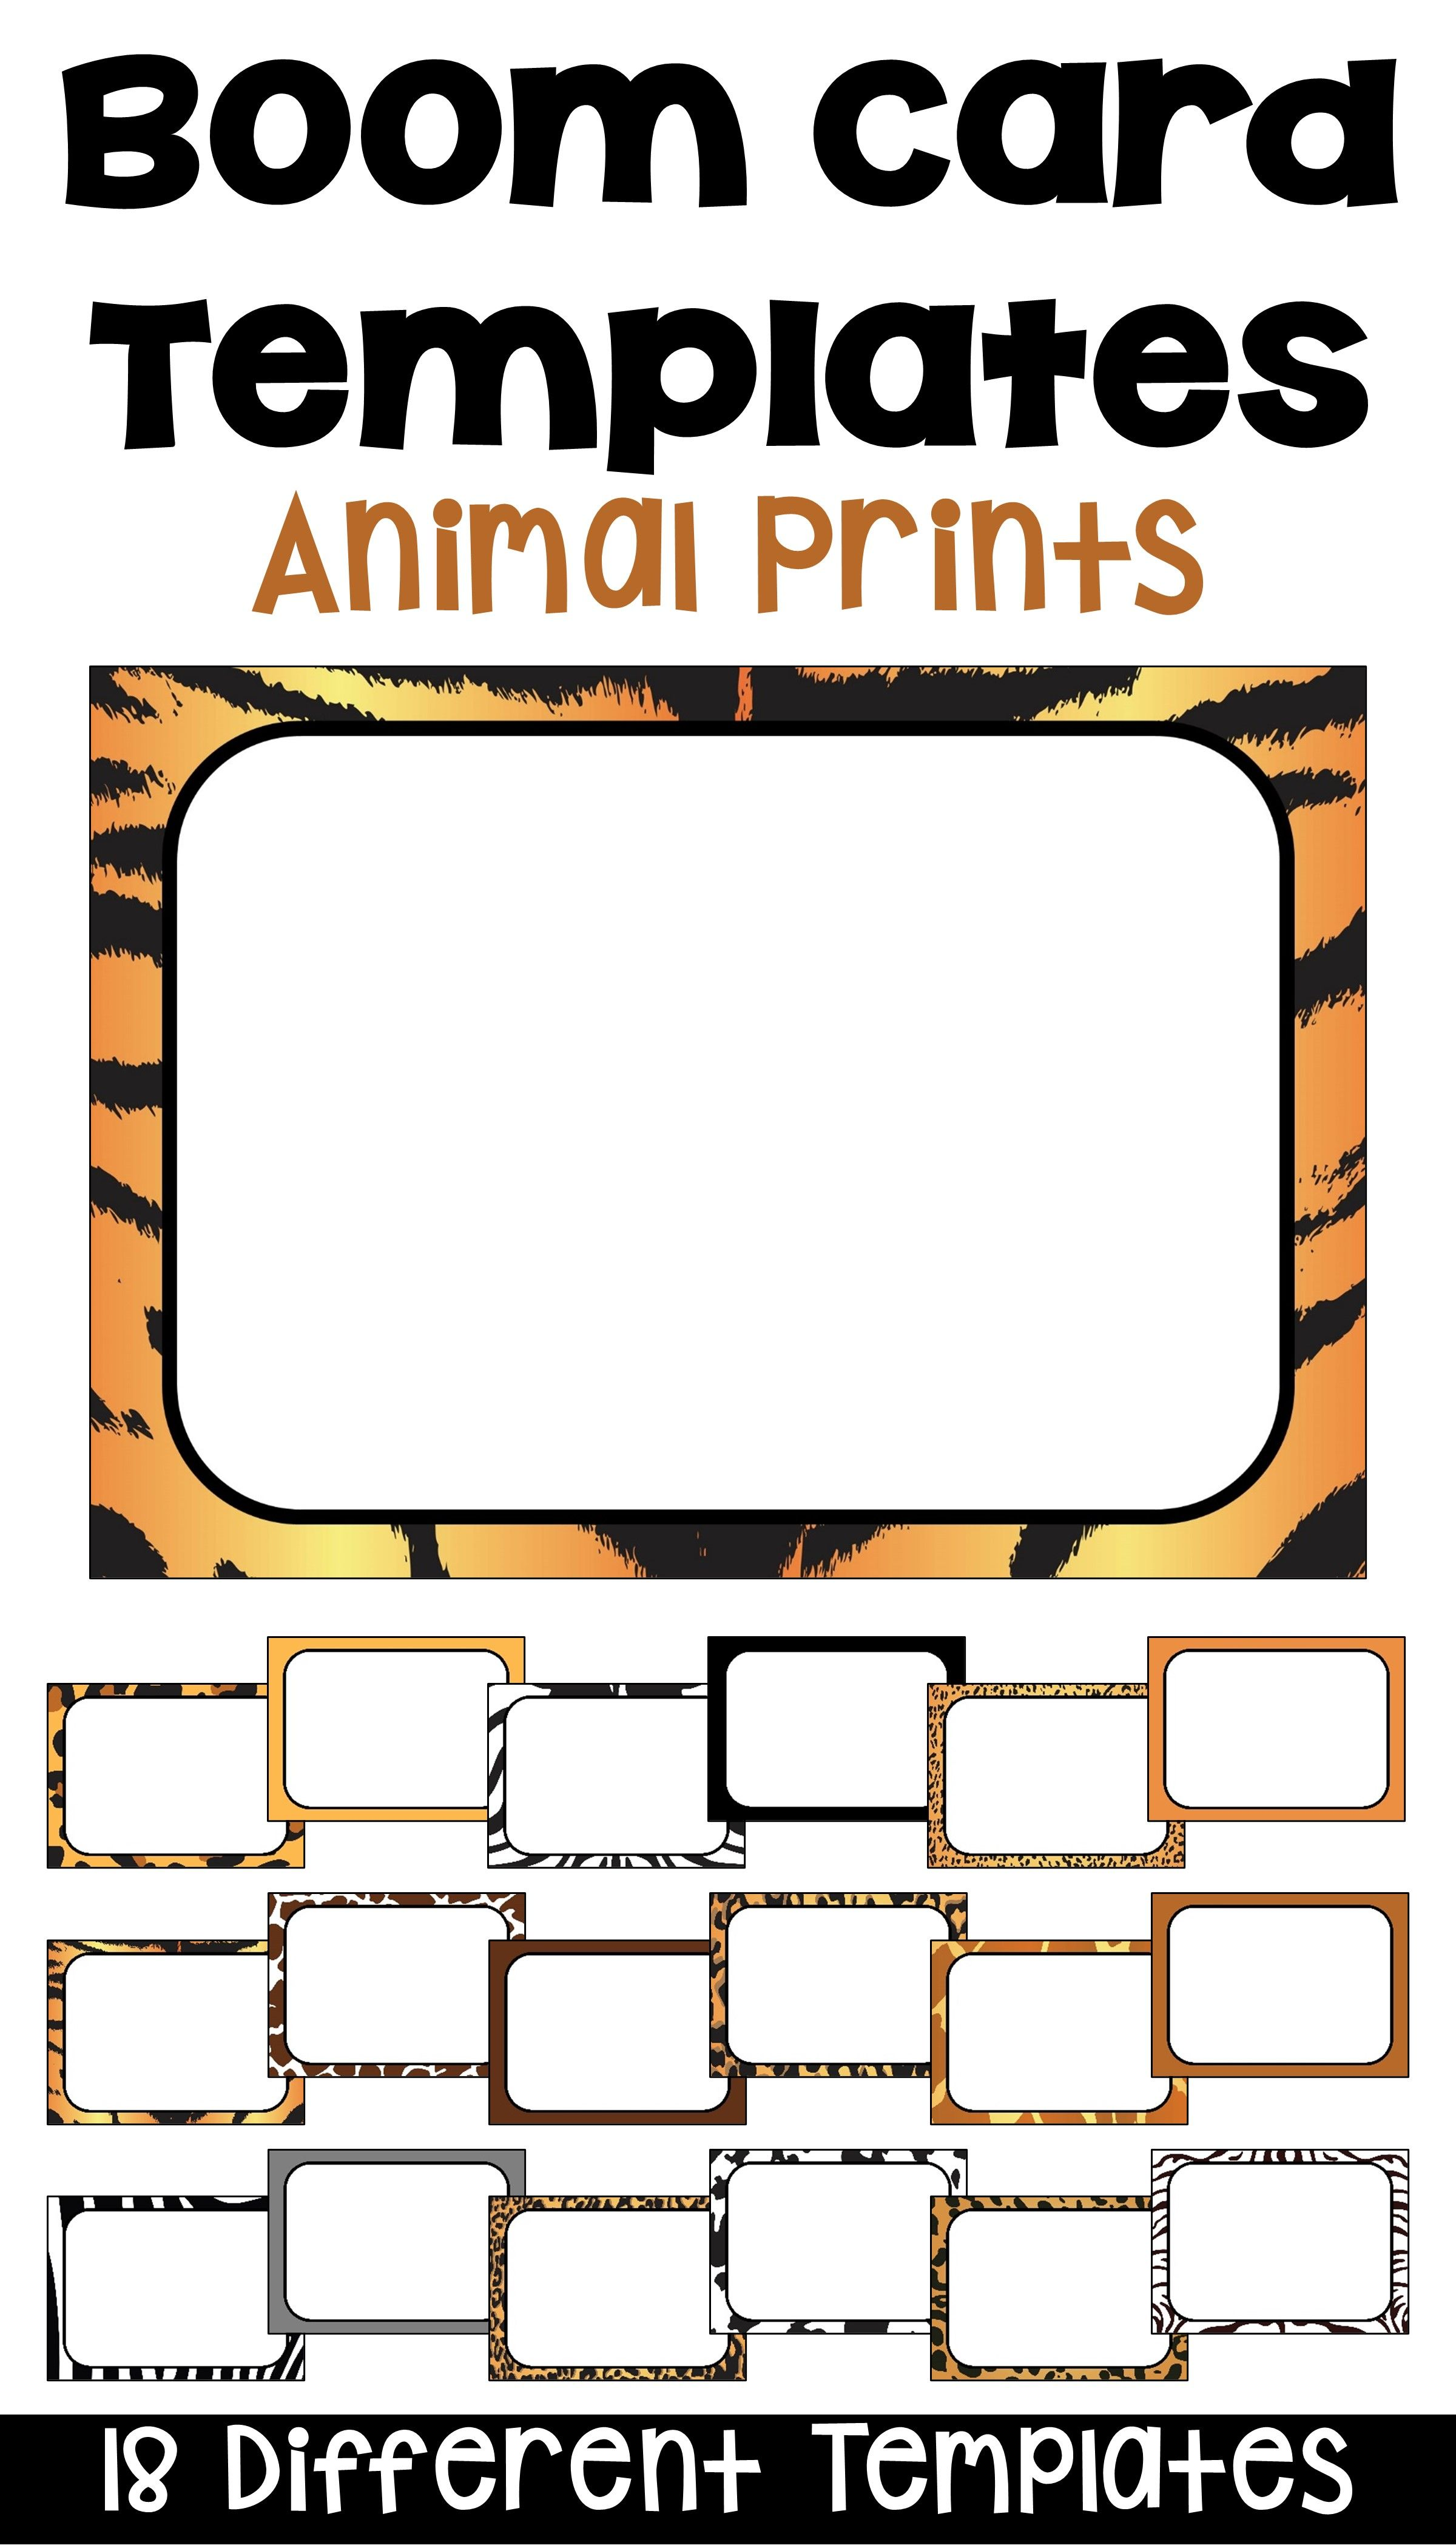 Boom Card Templates And Frames In Animal Prints Card Templates Digital Literacy Differentiation Math